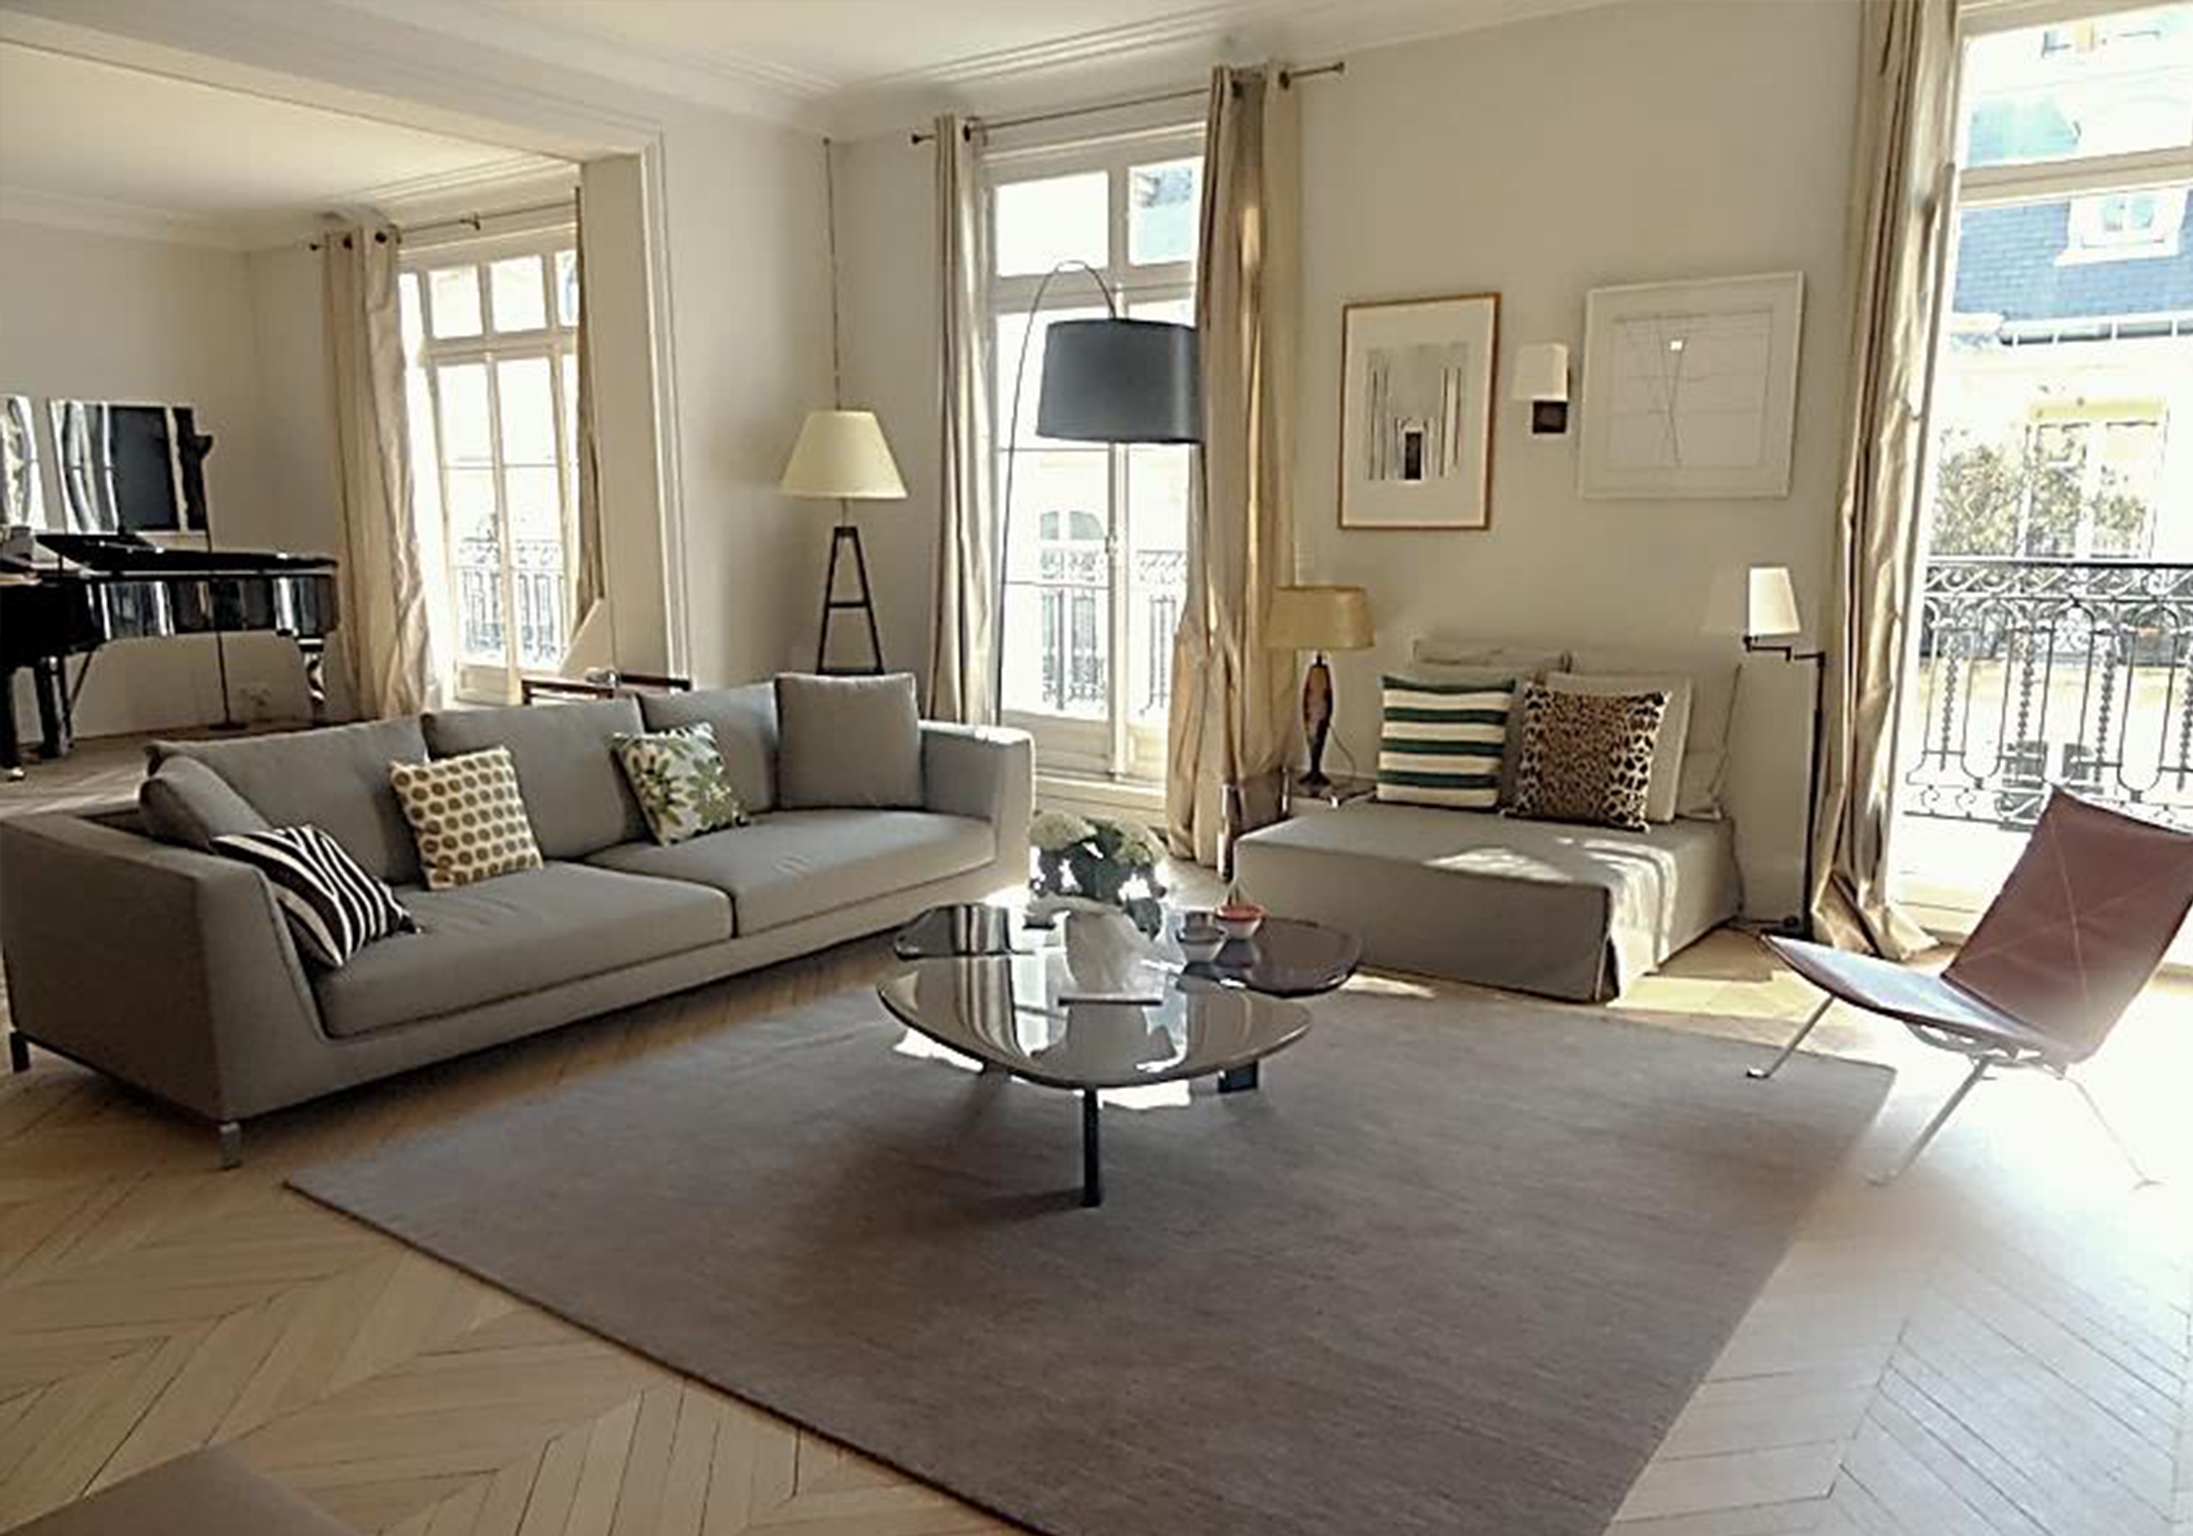 Interieur singulier appartement paris 16 - Idee deco maison stille moderne ancien ...